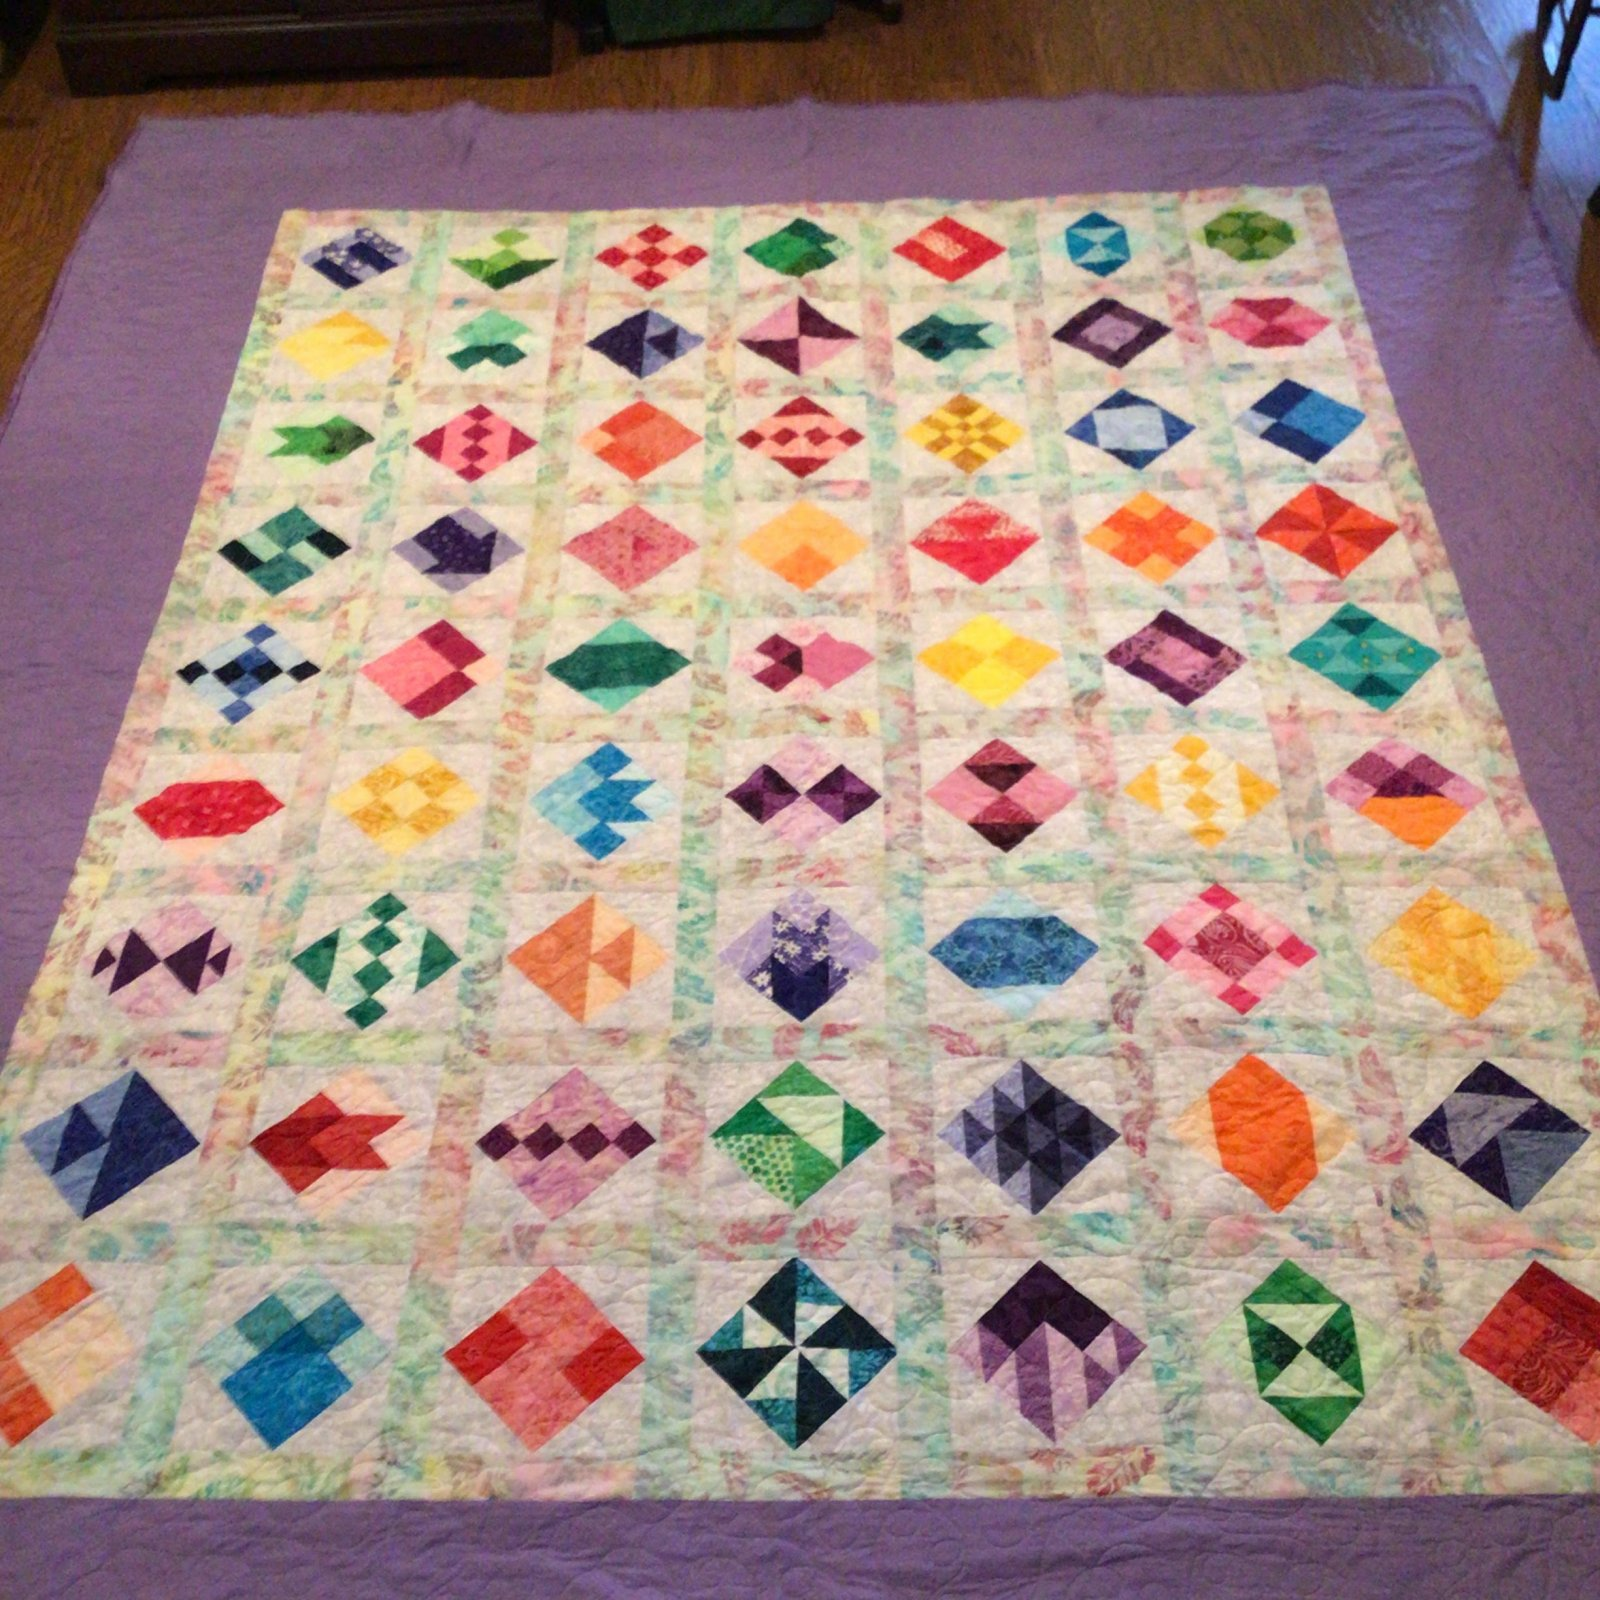 73. Untitled 2020 ACC Block of the month